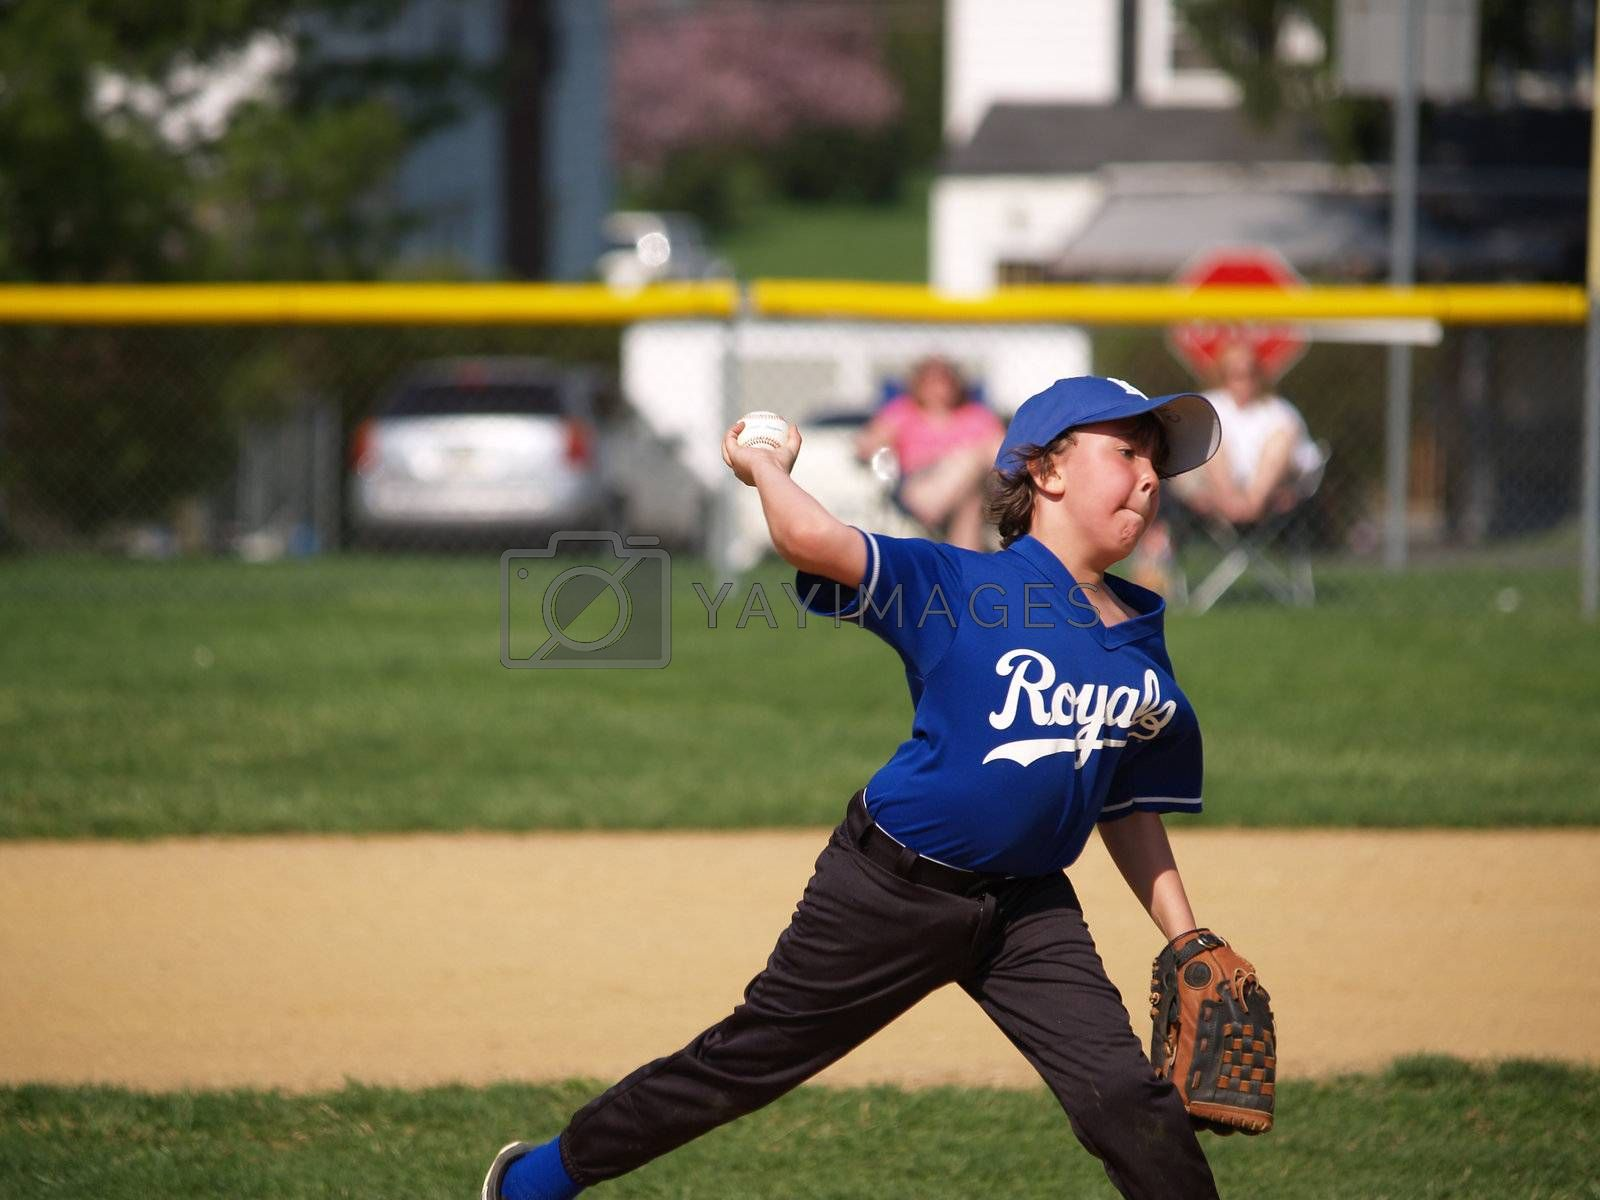 a determined little league baseball pitcher on the mound